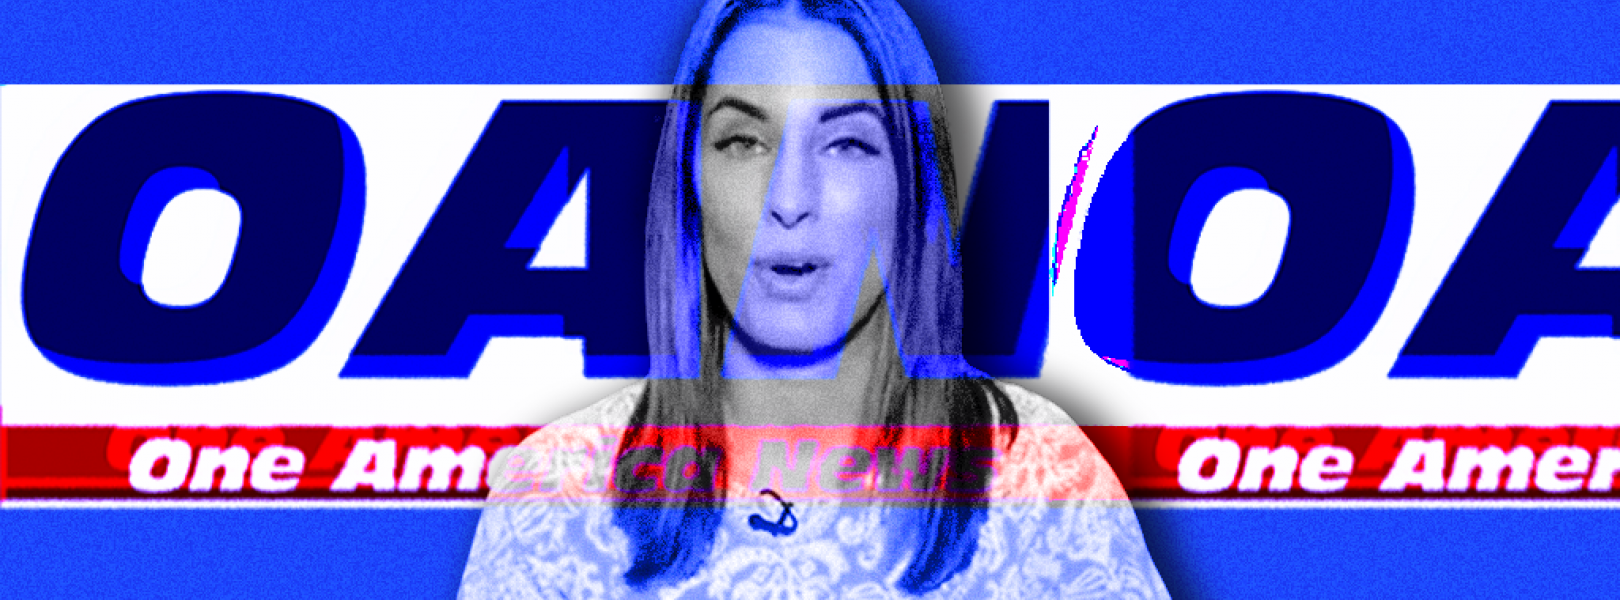 A blue-tinted, partially transparent image of OAN correspondent Christina Bobb layered on top of two overlapping One America News logos